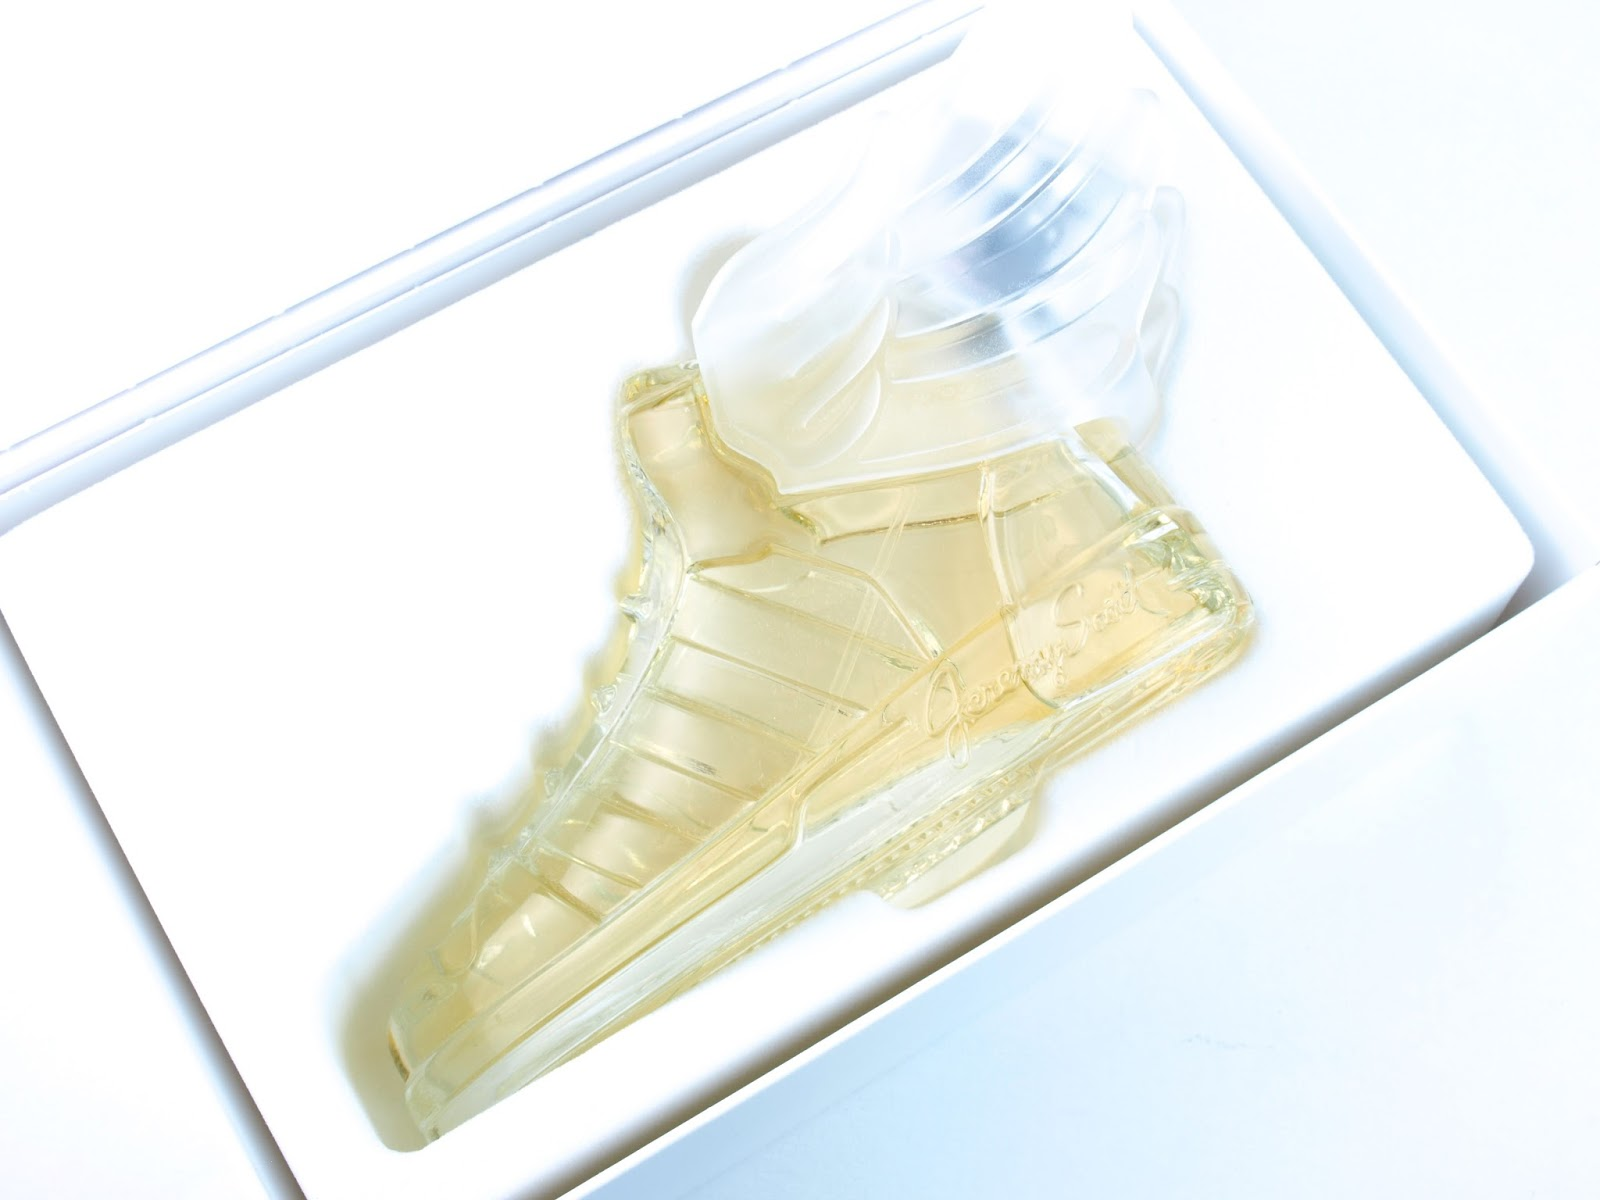 adidas js wings molded unisex high-top sneakers